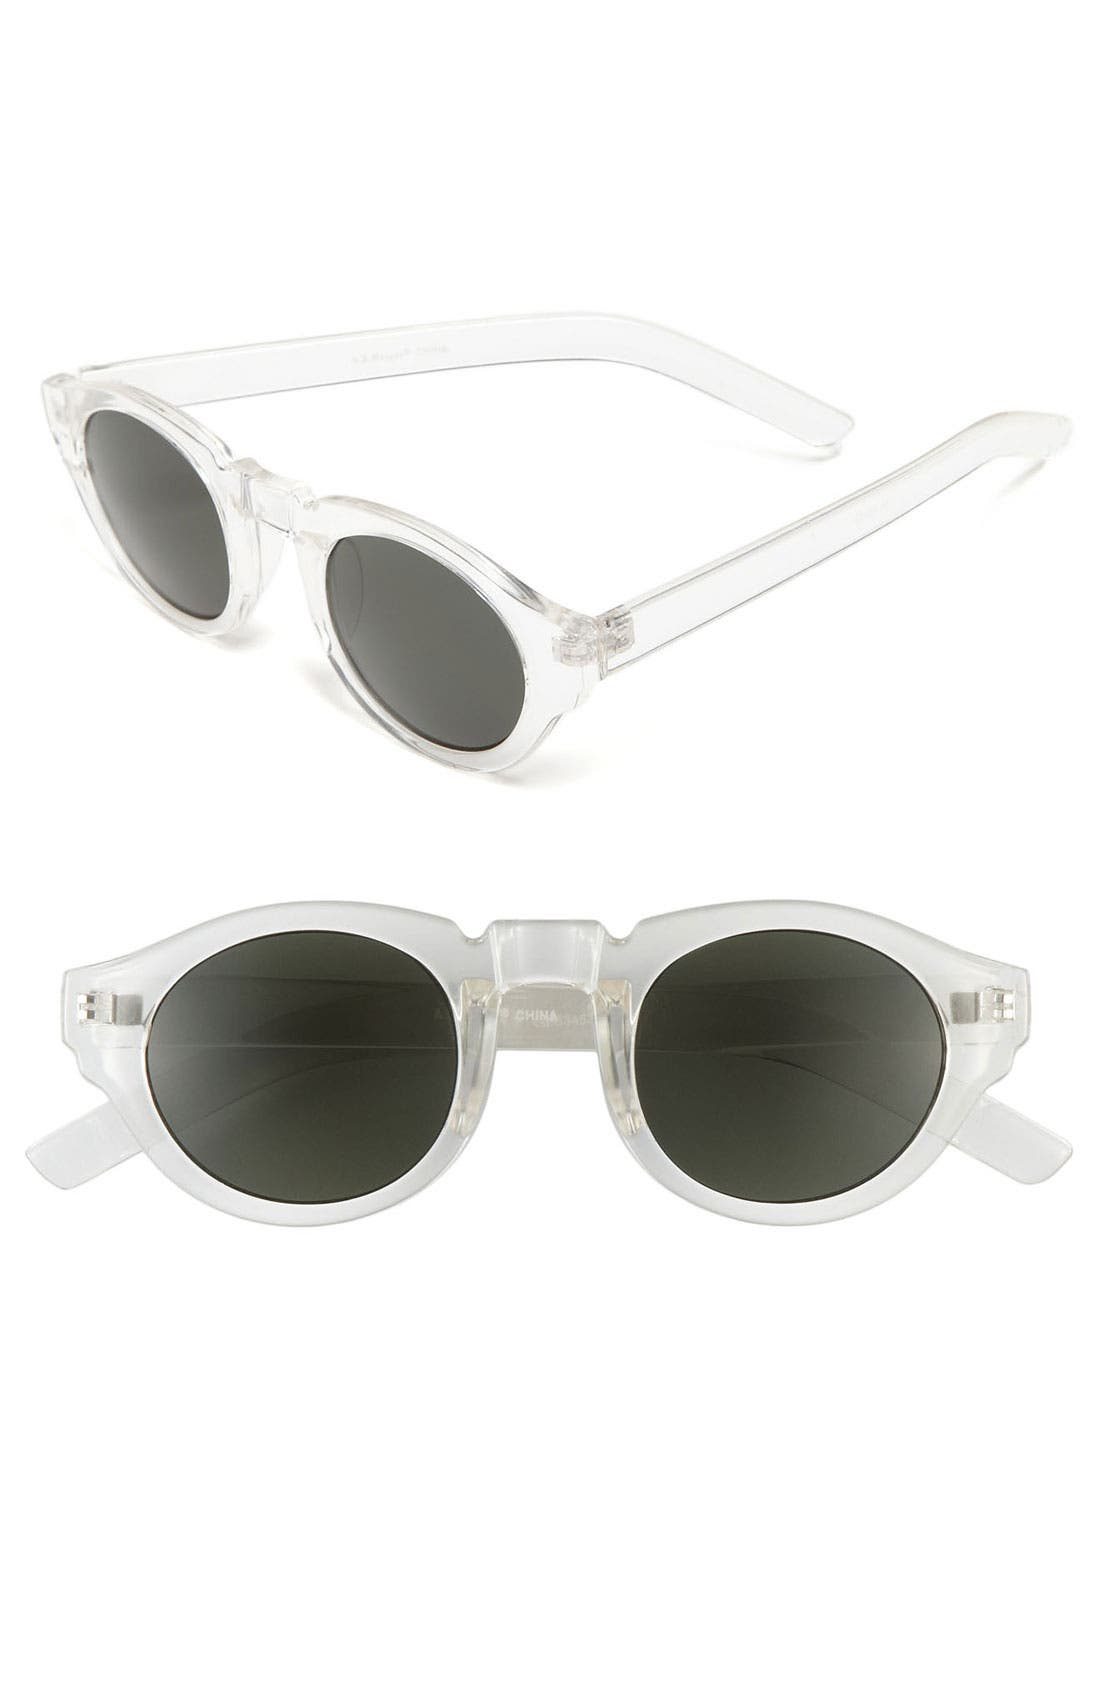 Alternate Image 1 Selected - A.J. Morgan 'Astro' Retro Sunglasses